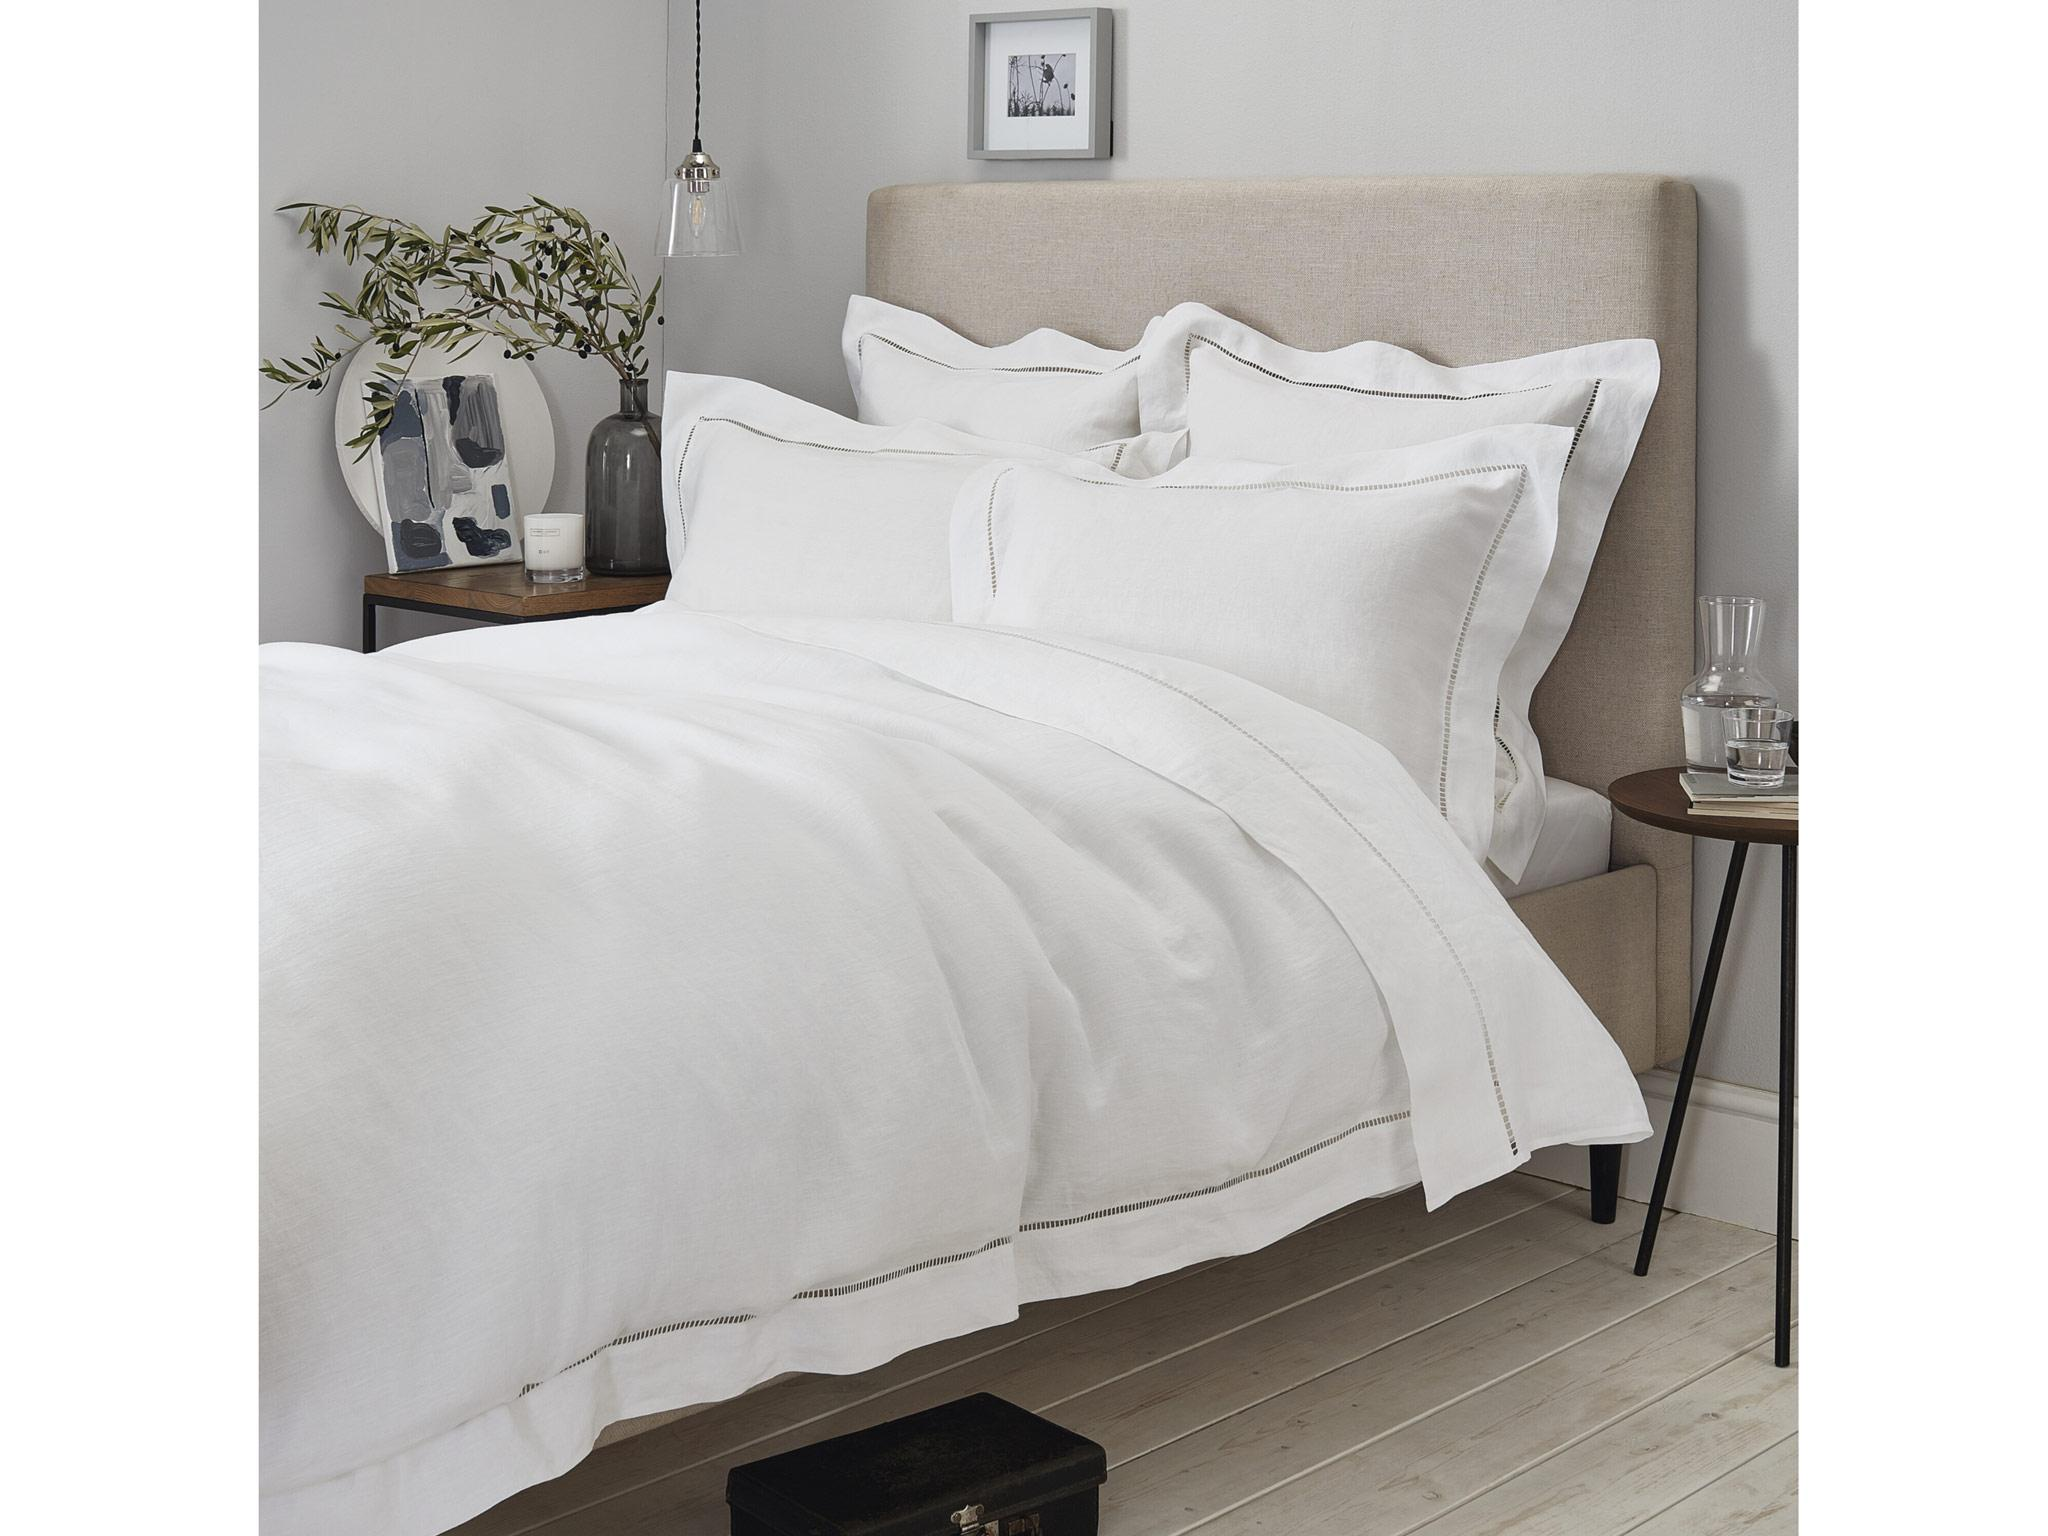 The White Company Santorini Linen Bed Linen Collection: From £45, The White  Company